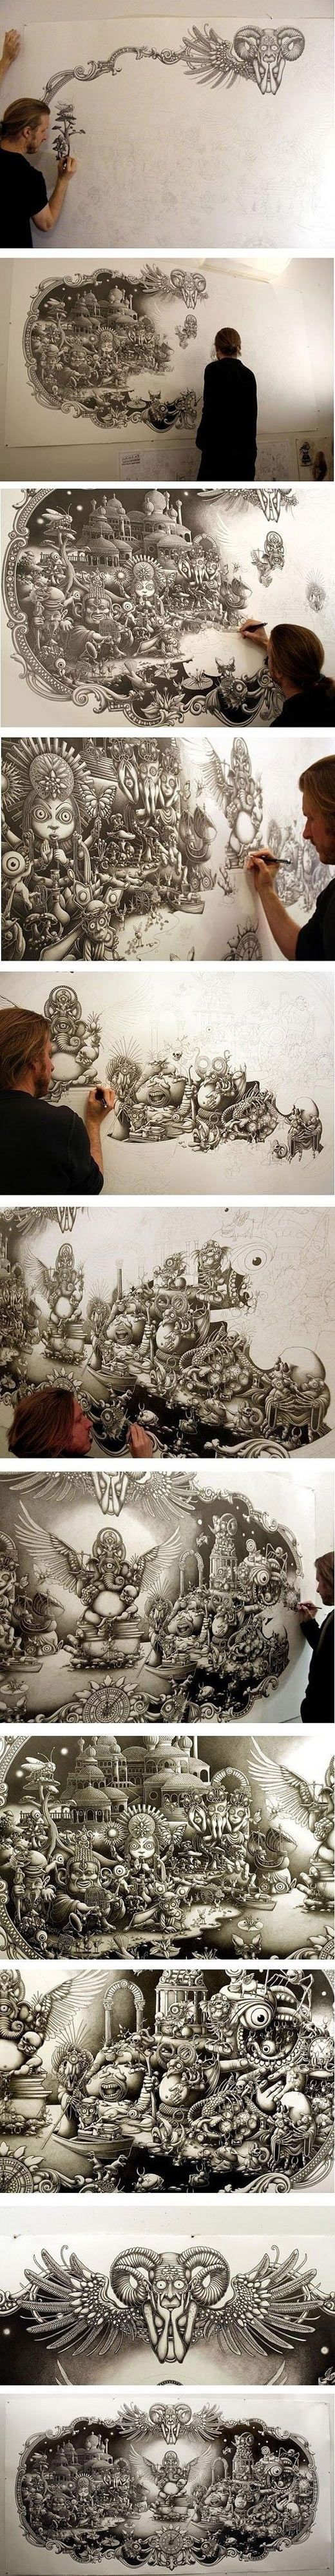 106 best images about more cool art on pinterest for Cool detailed drawings